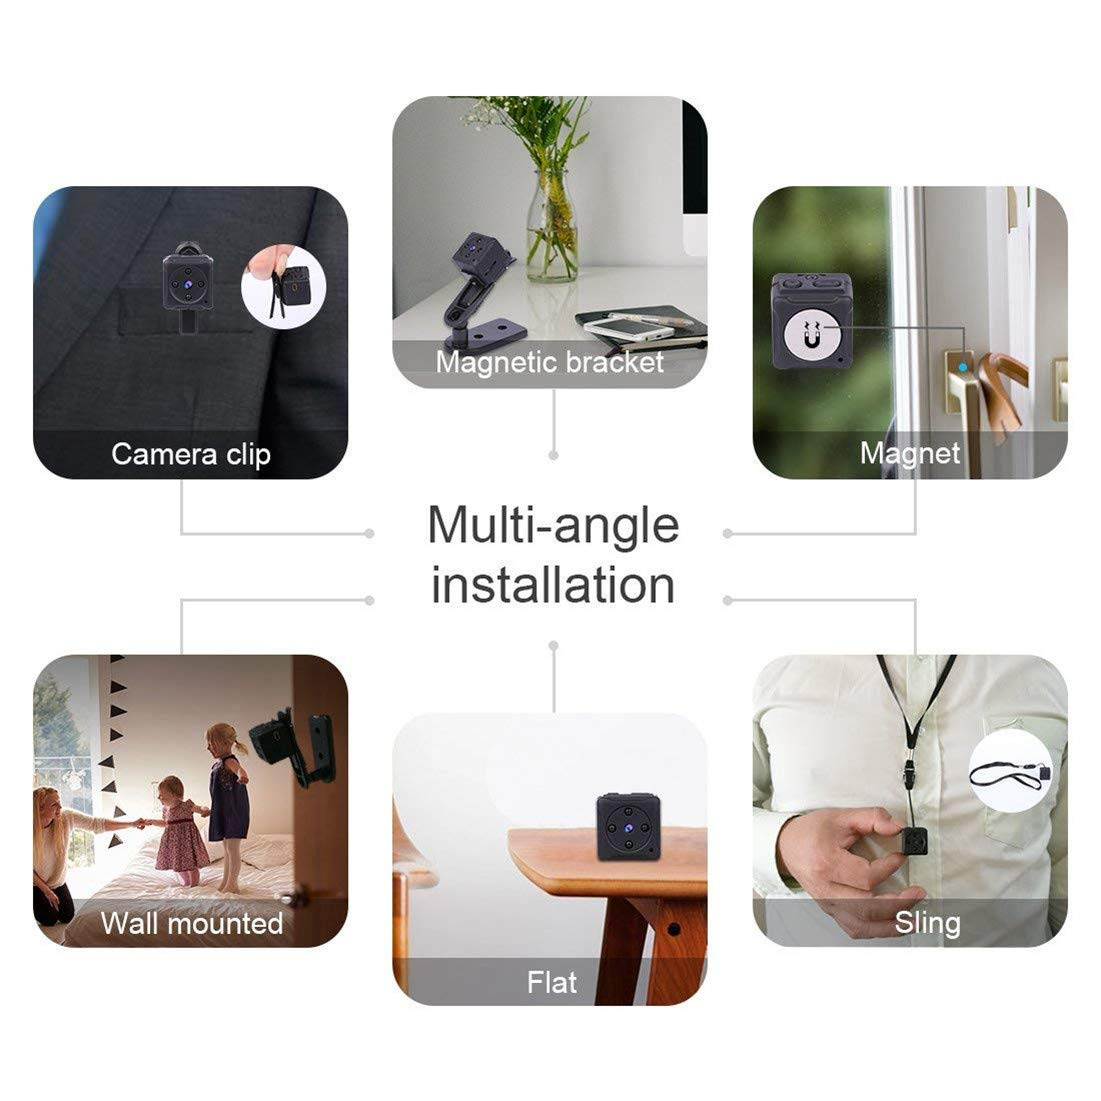 Mini Spy Hidden Camera Niyps 1080p Portable Small Hd Cubicle Wiring Diagram Network Nanny Cam With Night Vision And Motion Detective Perfect Indoor Covert Security